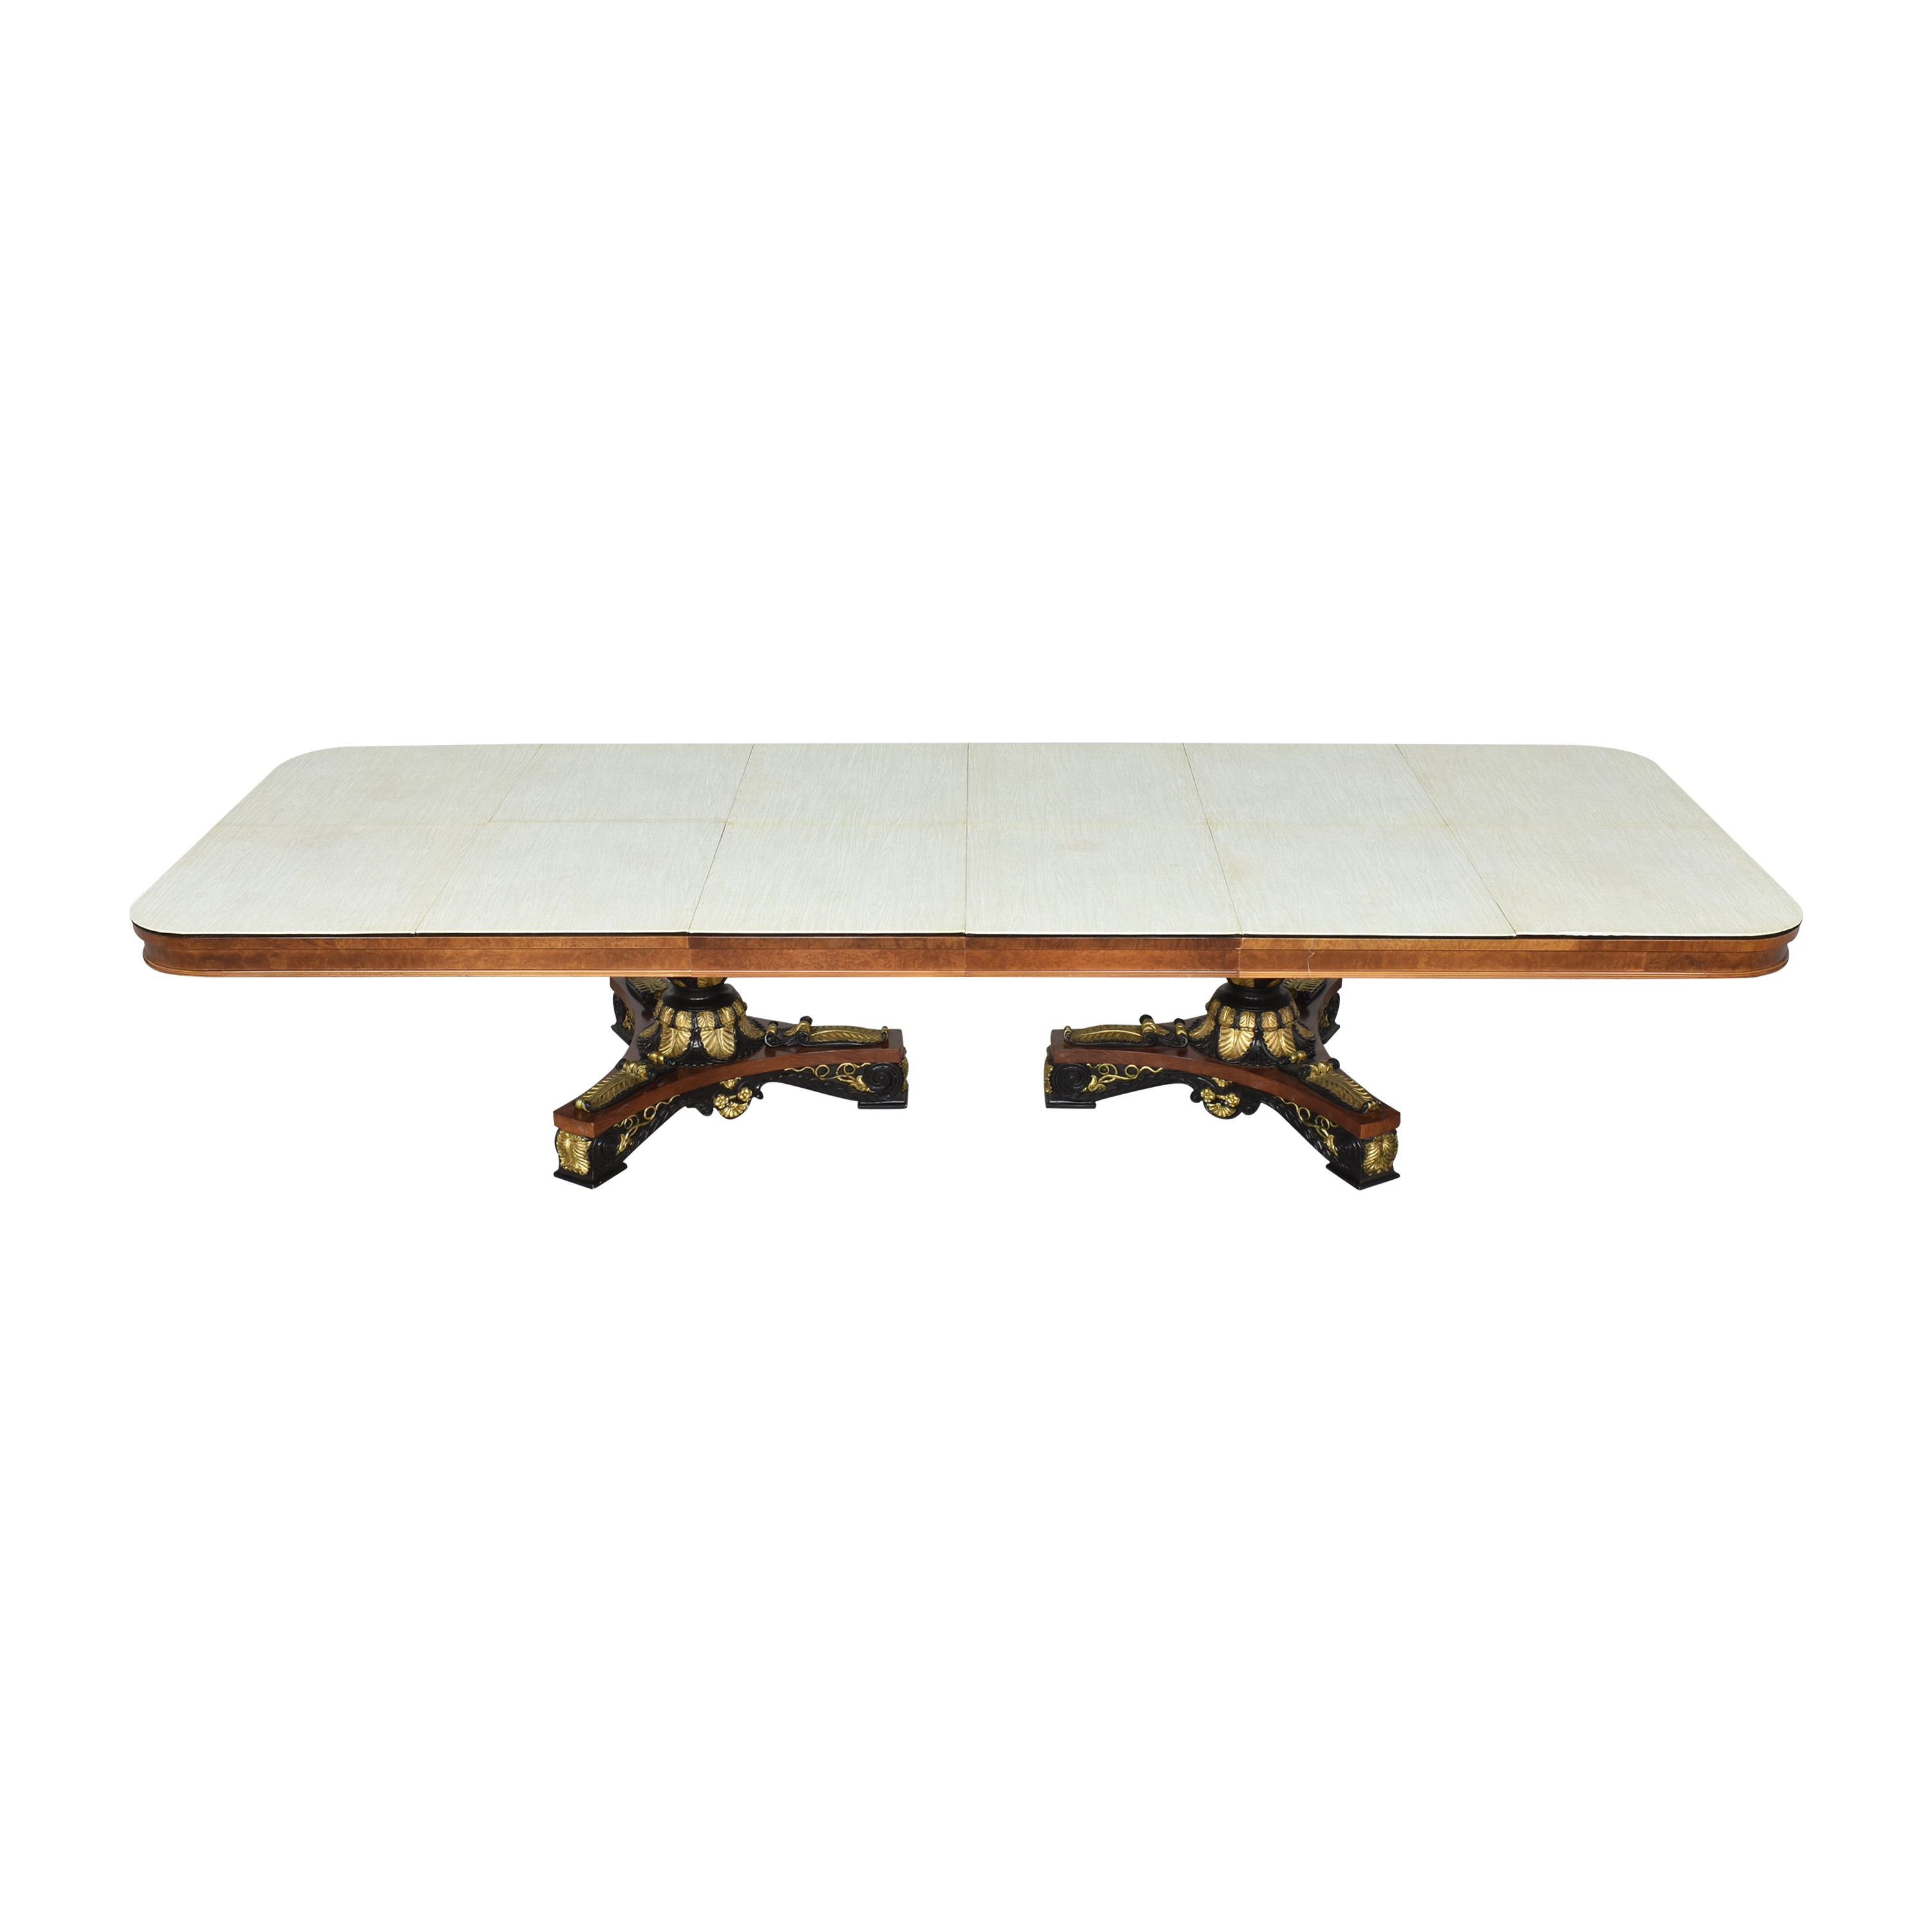 Inlaid Extendable Dining Table used